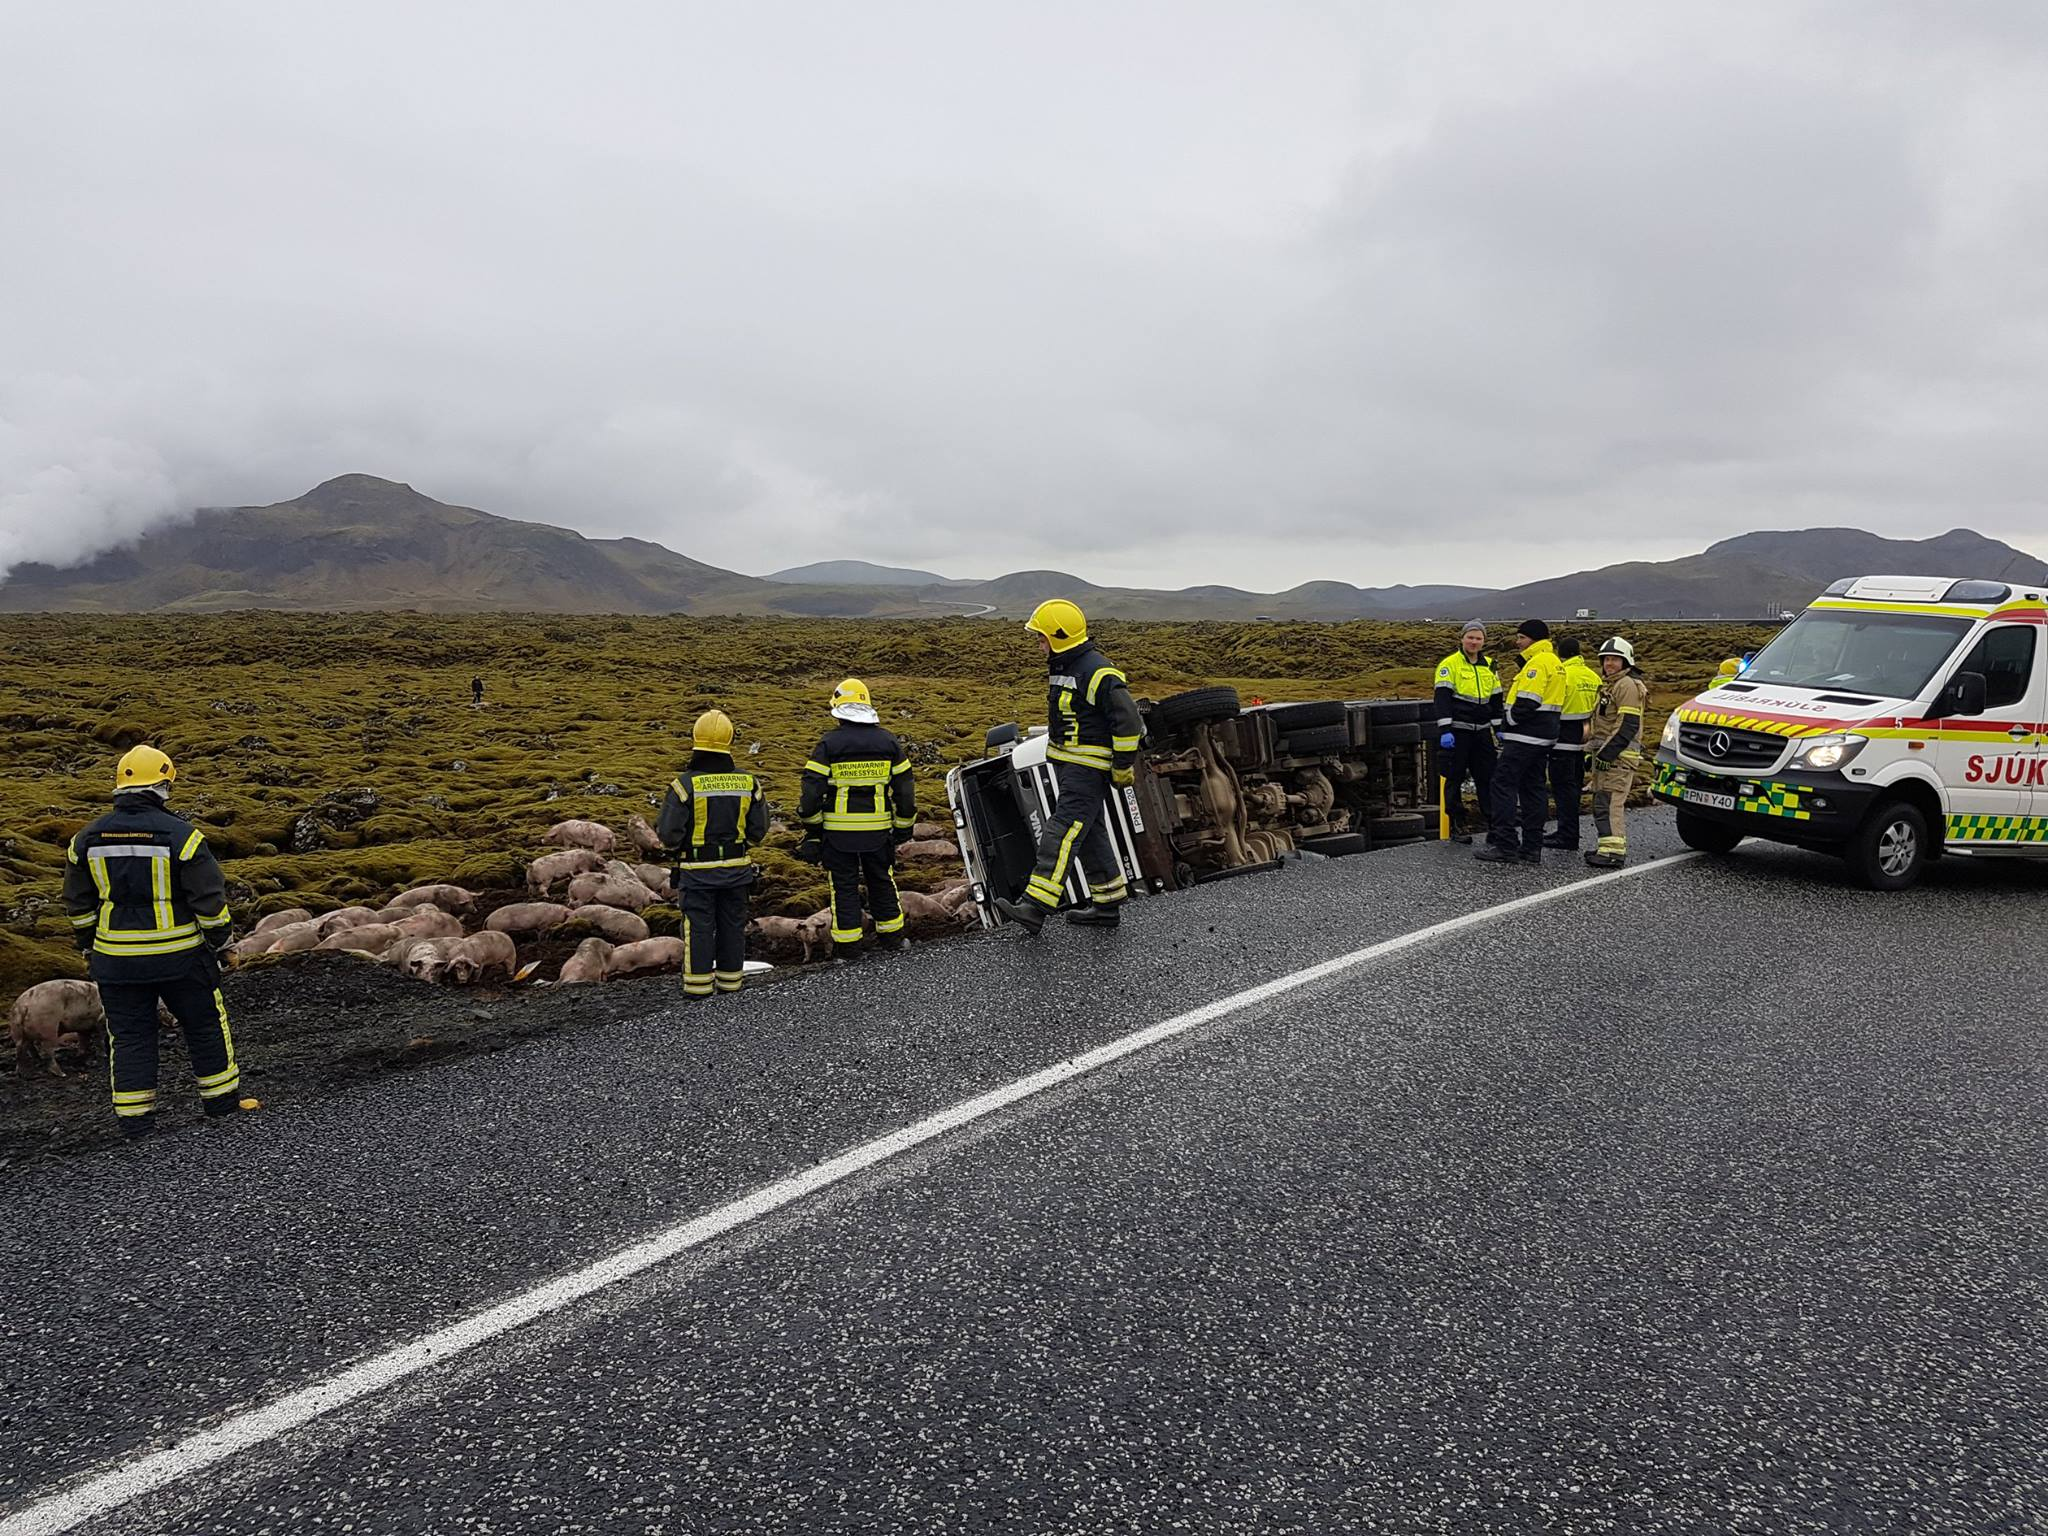 114 Pigs In A Car Crash In South Iceland